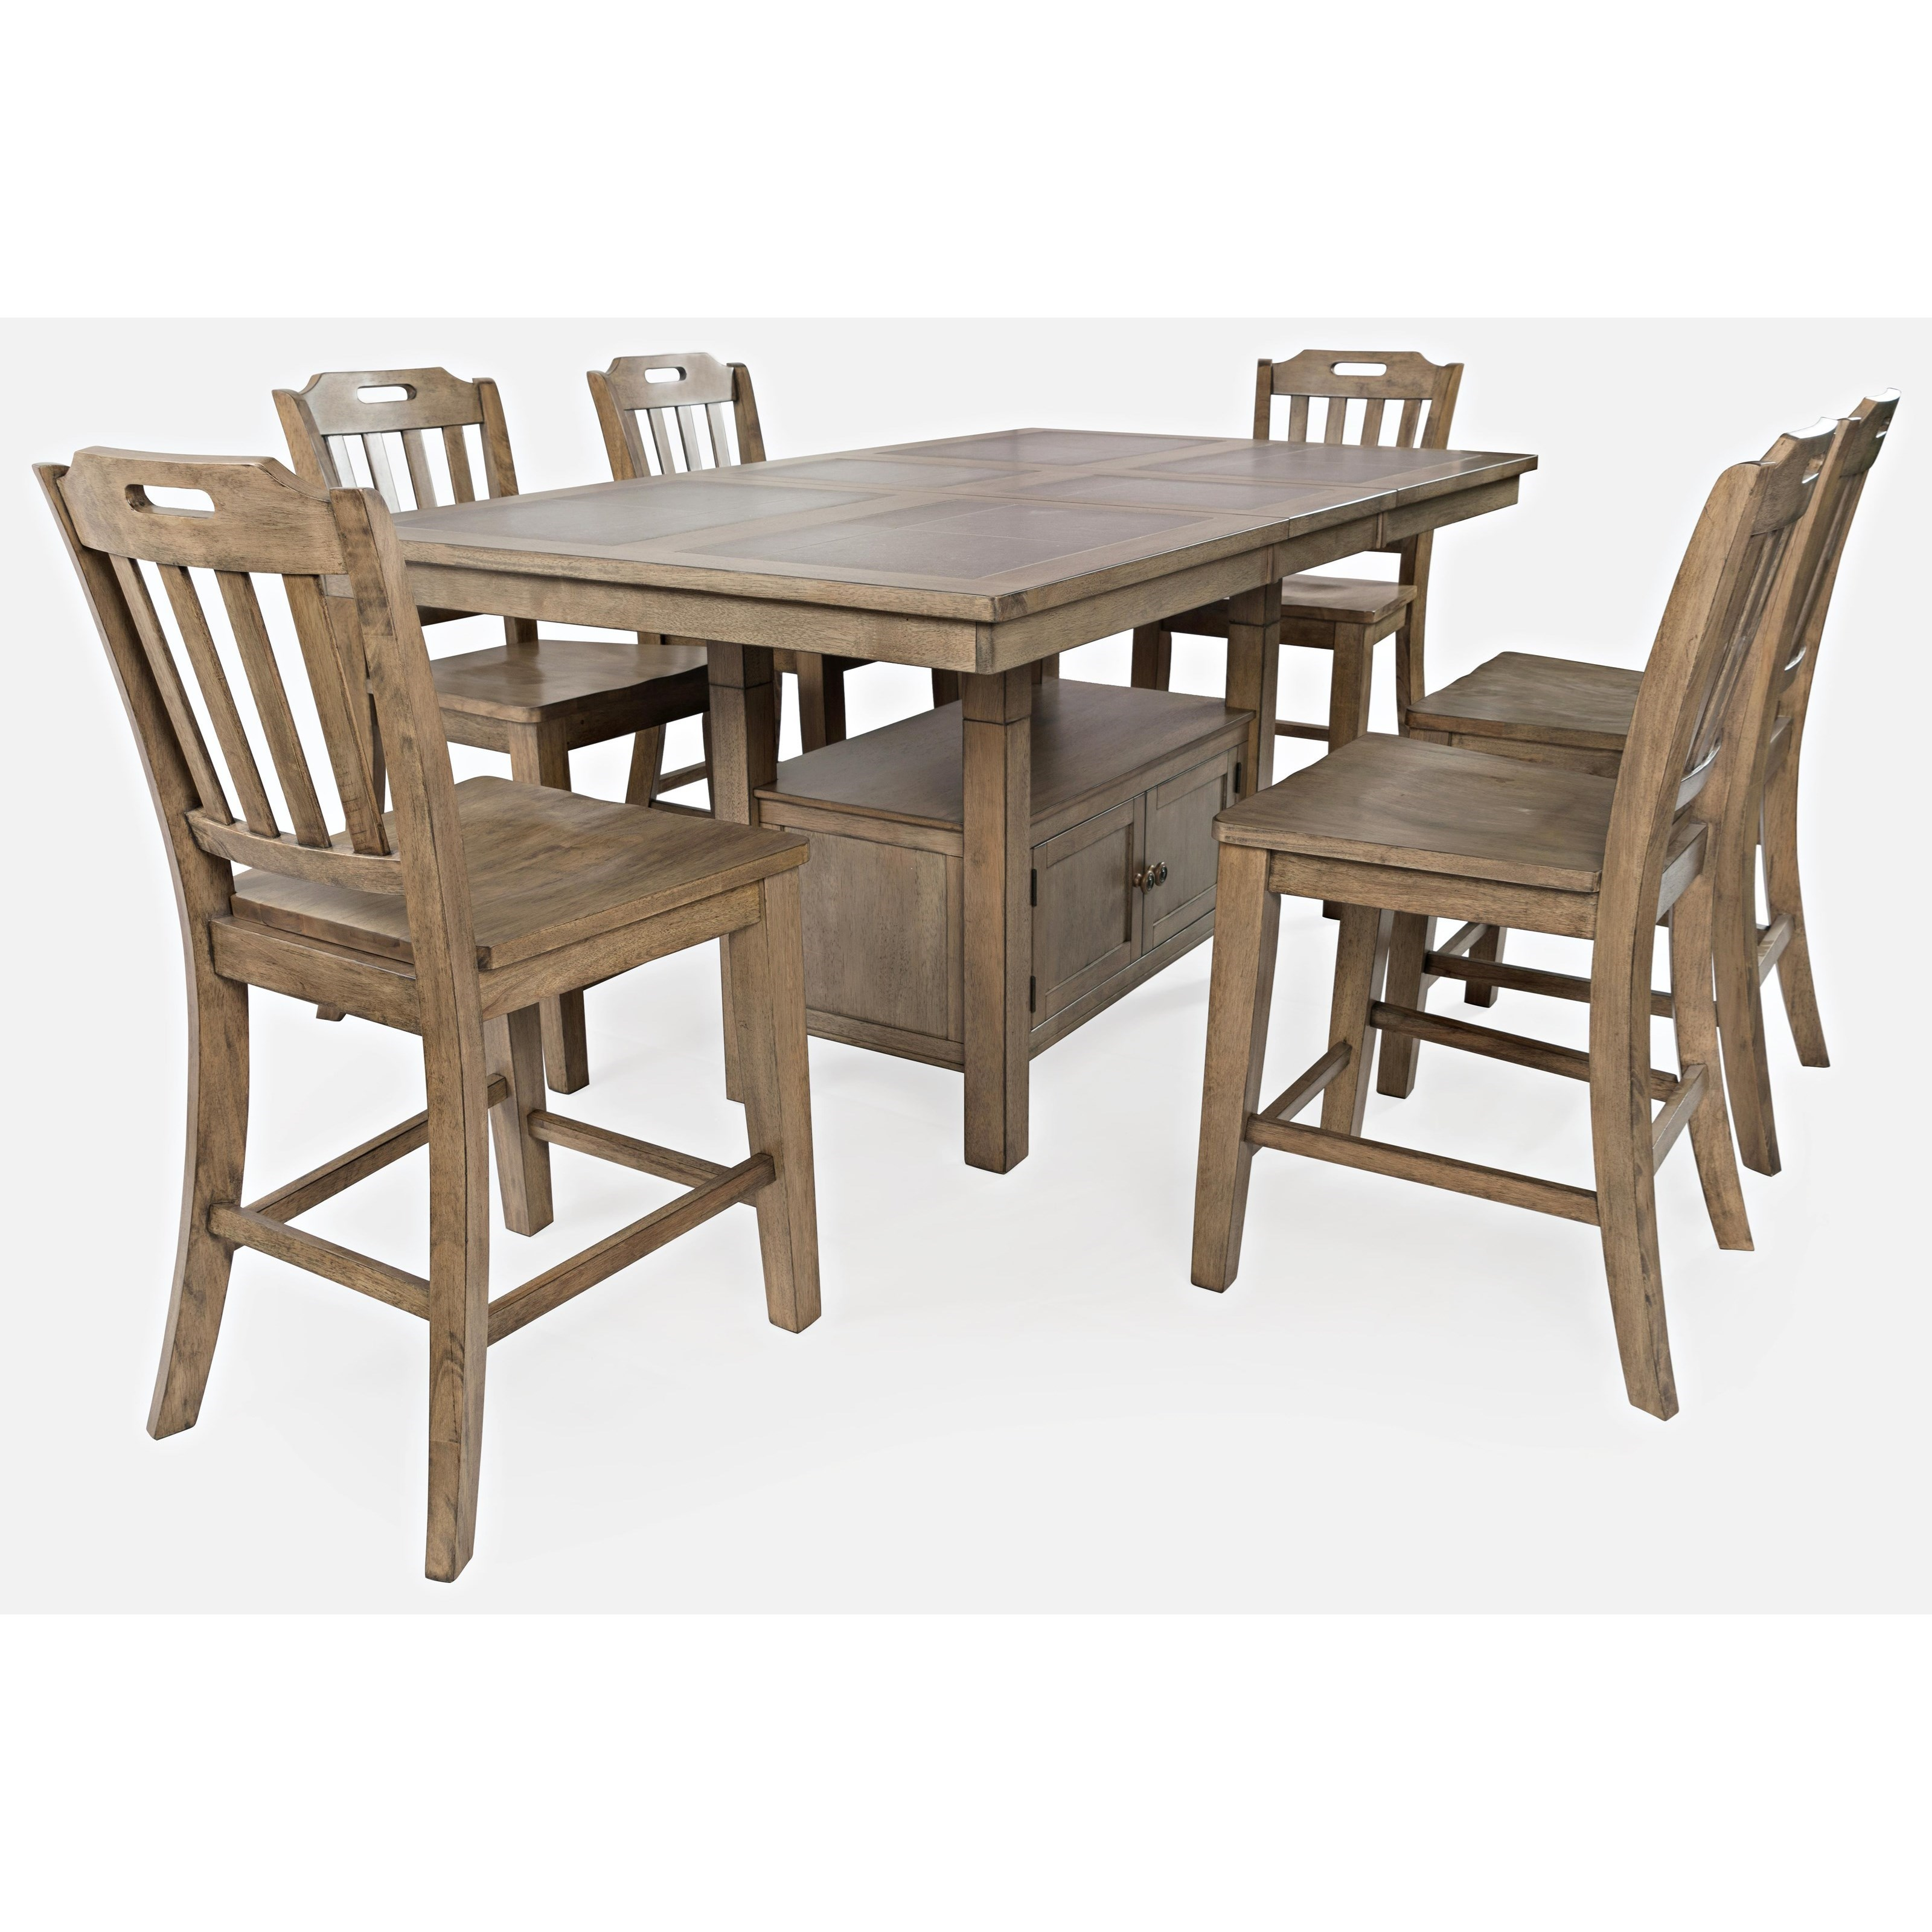 Prescott Park 7-Piece Dining Table and Chair Set by VFM Signature at Virginia Furniture Market